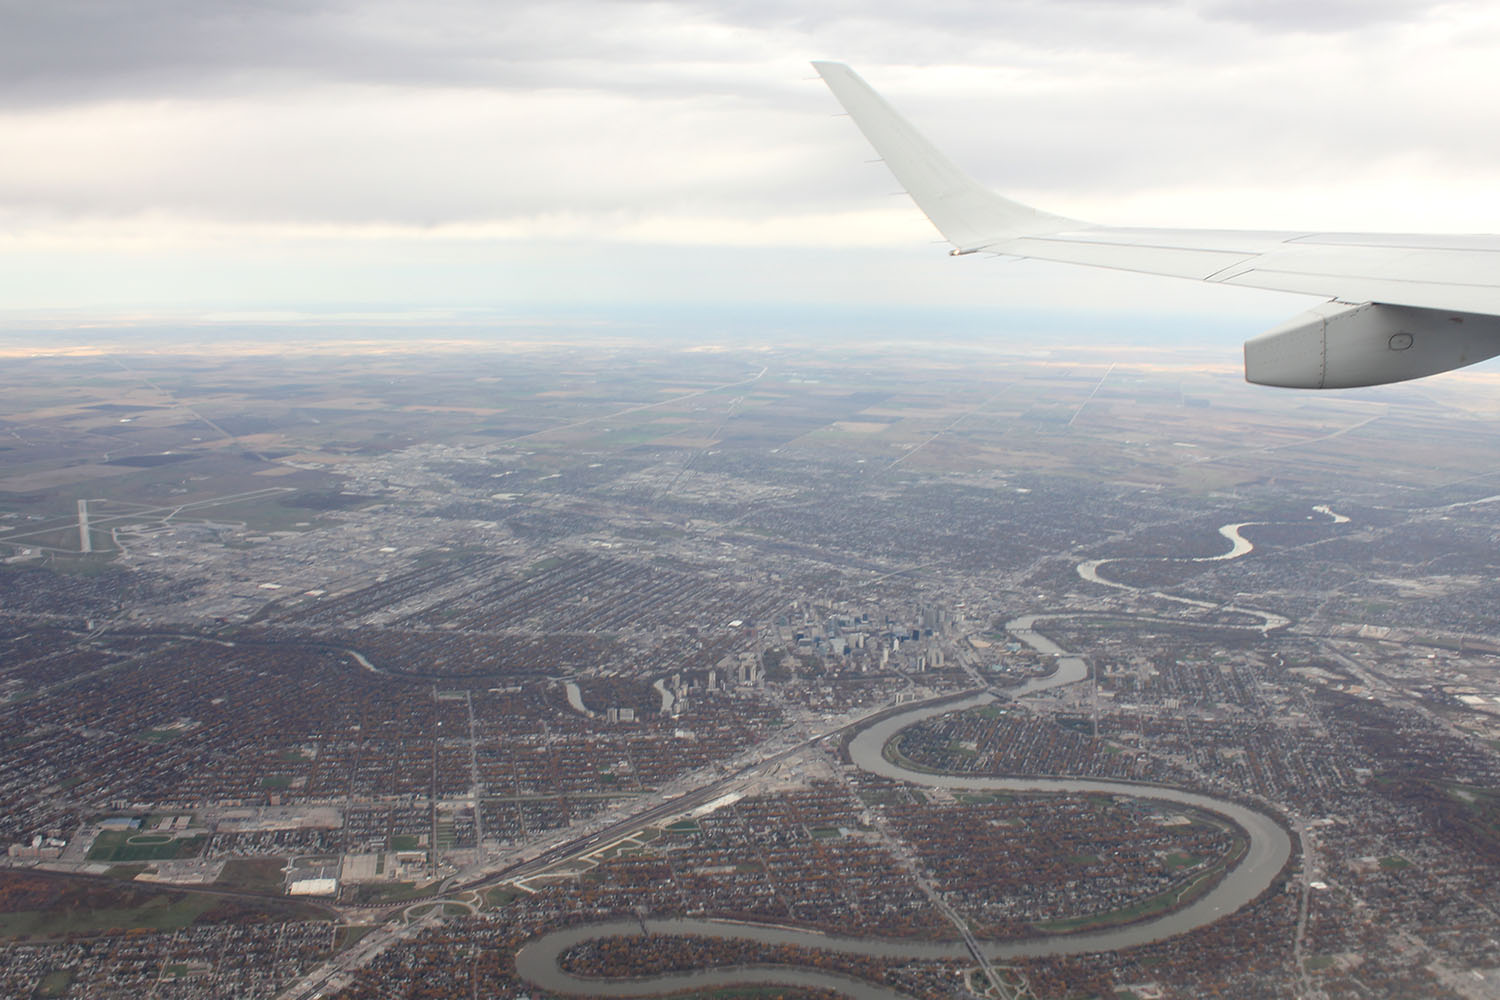 A picture take out of a plane I was on over my home, Winnipeg, MB.